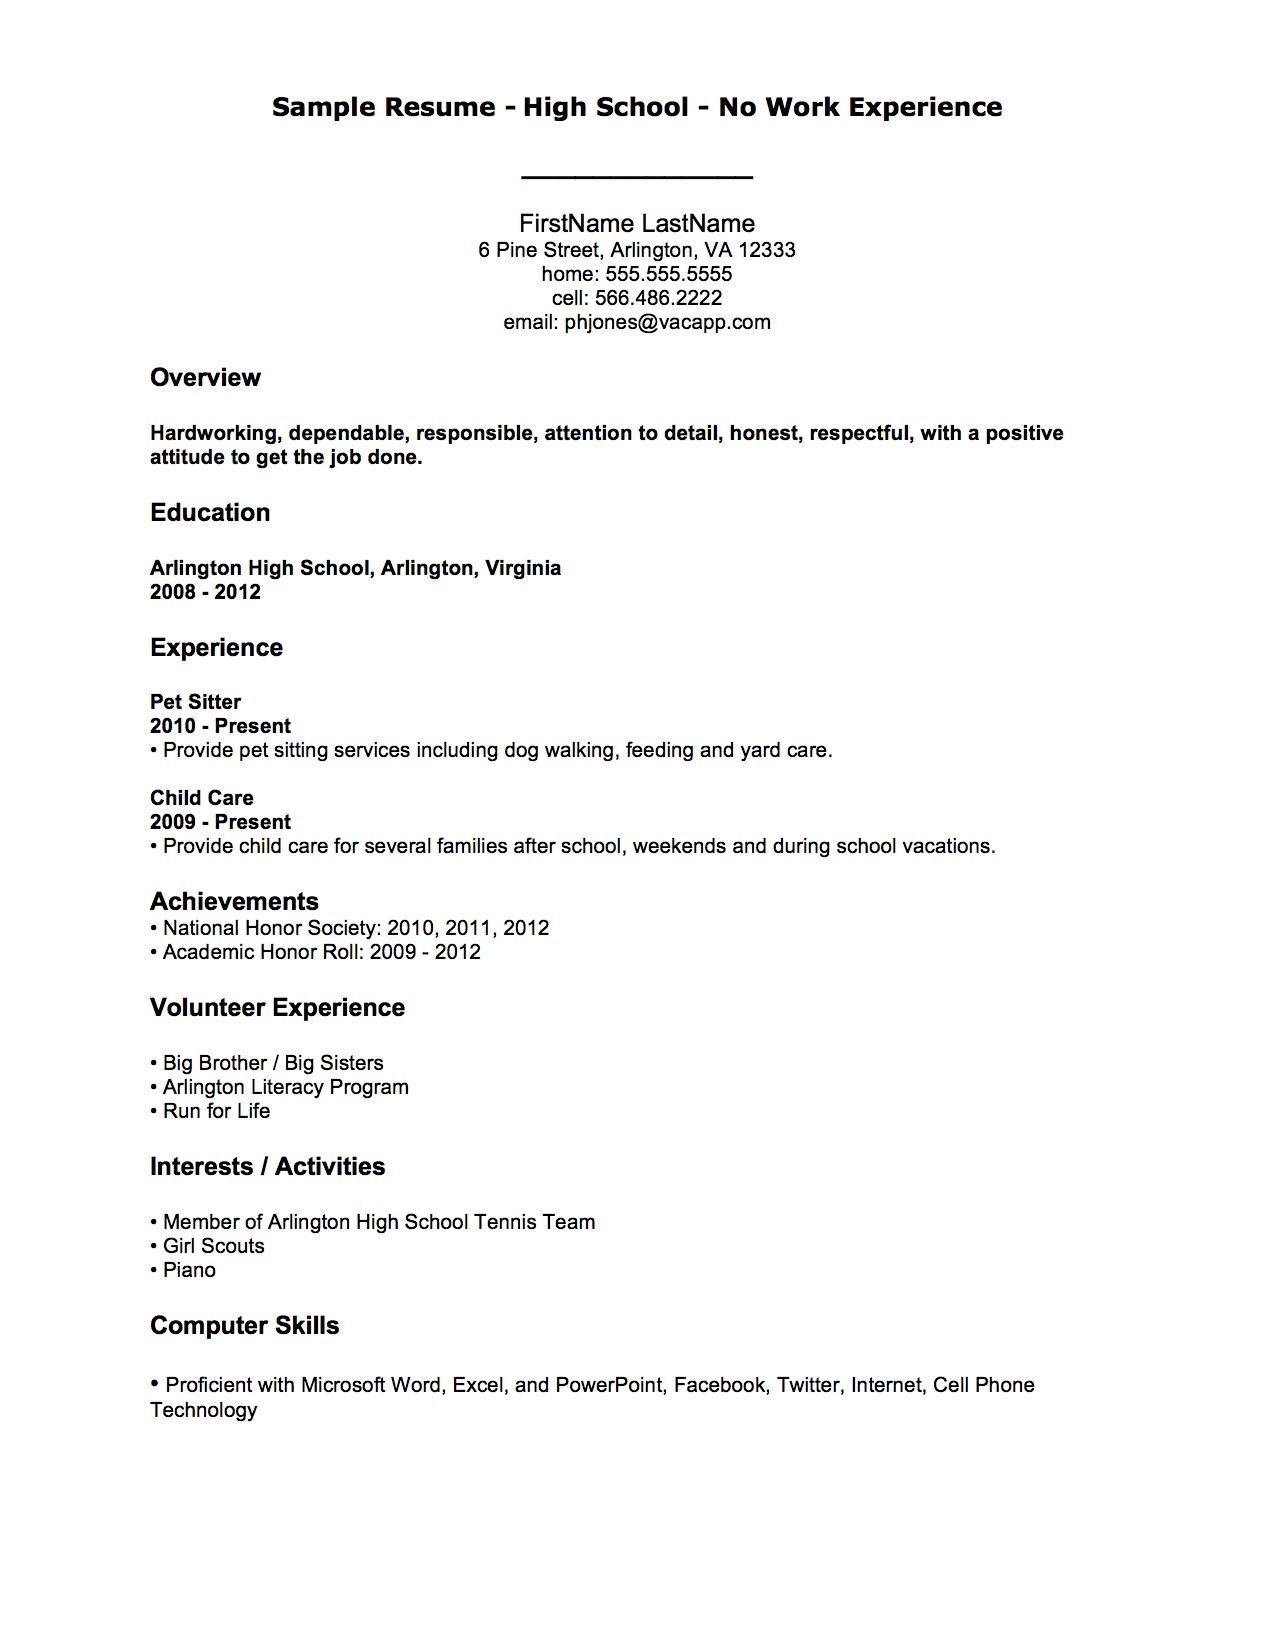 A Job Resume Sample Alluring Resume Examples No Job Experience  Resume Examples  Pinterest .